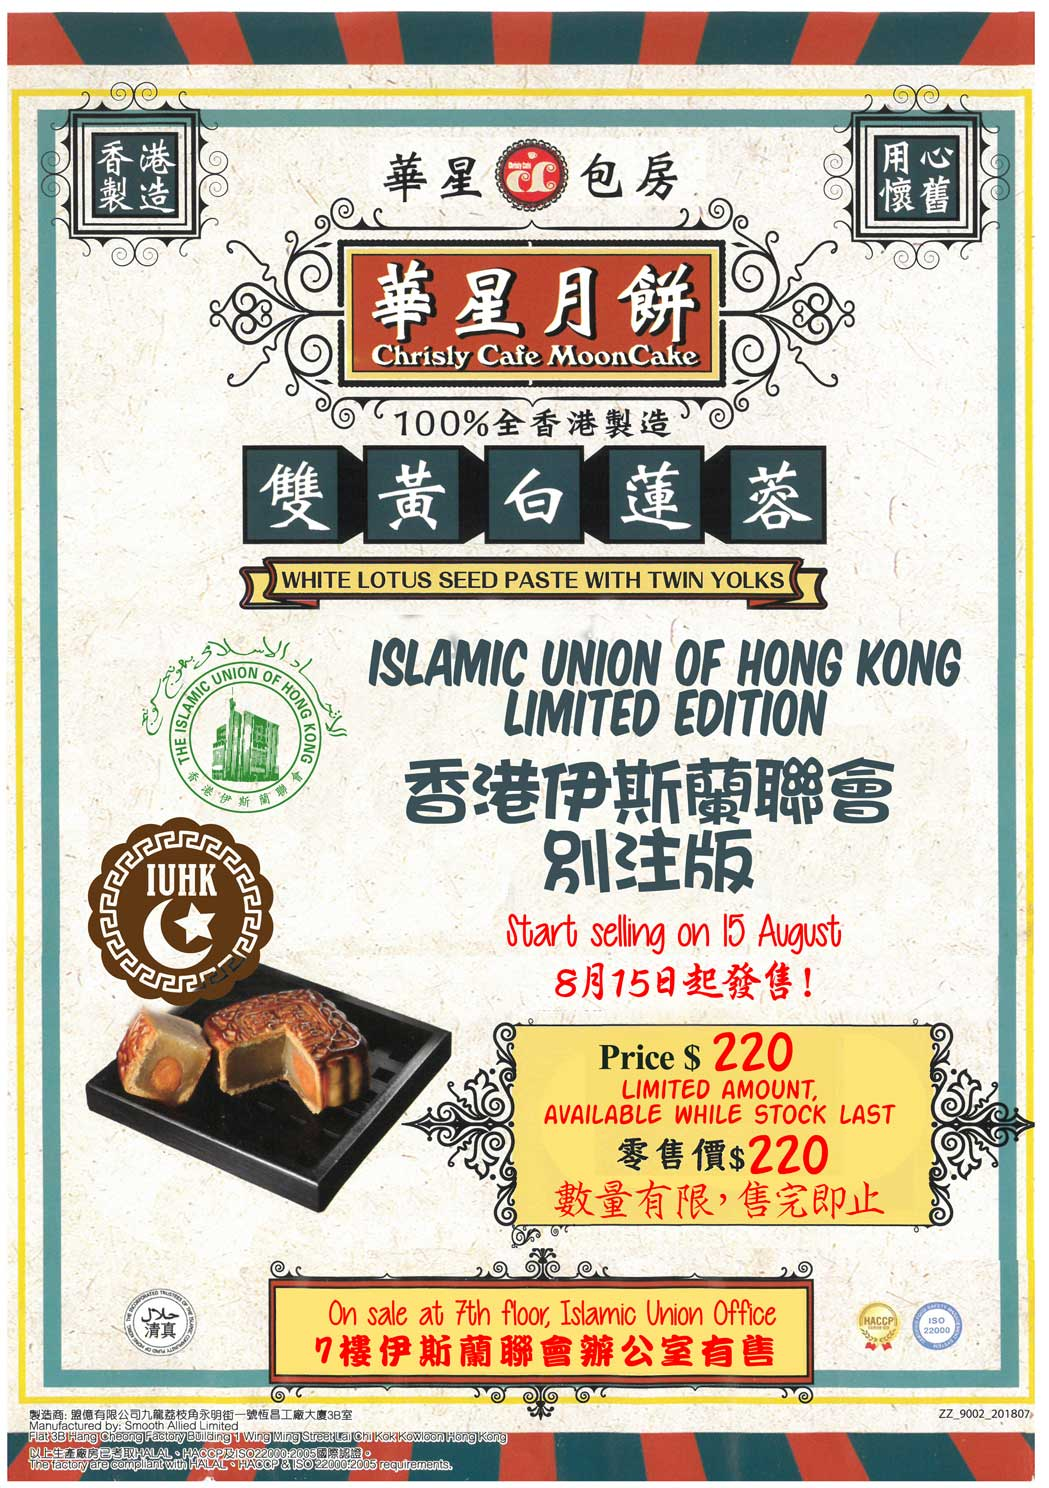 Chrisly Cafe Moon Cake - Islamic Union of Hong Kong's Limited Edition (29/7/2020)